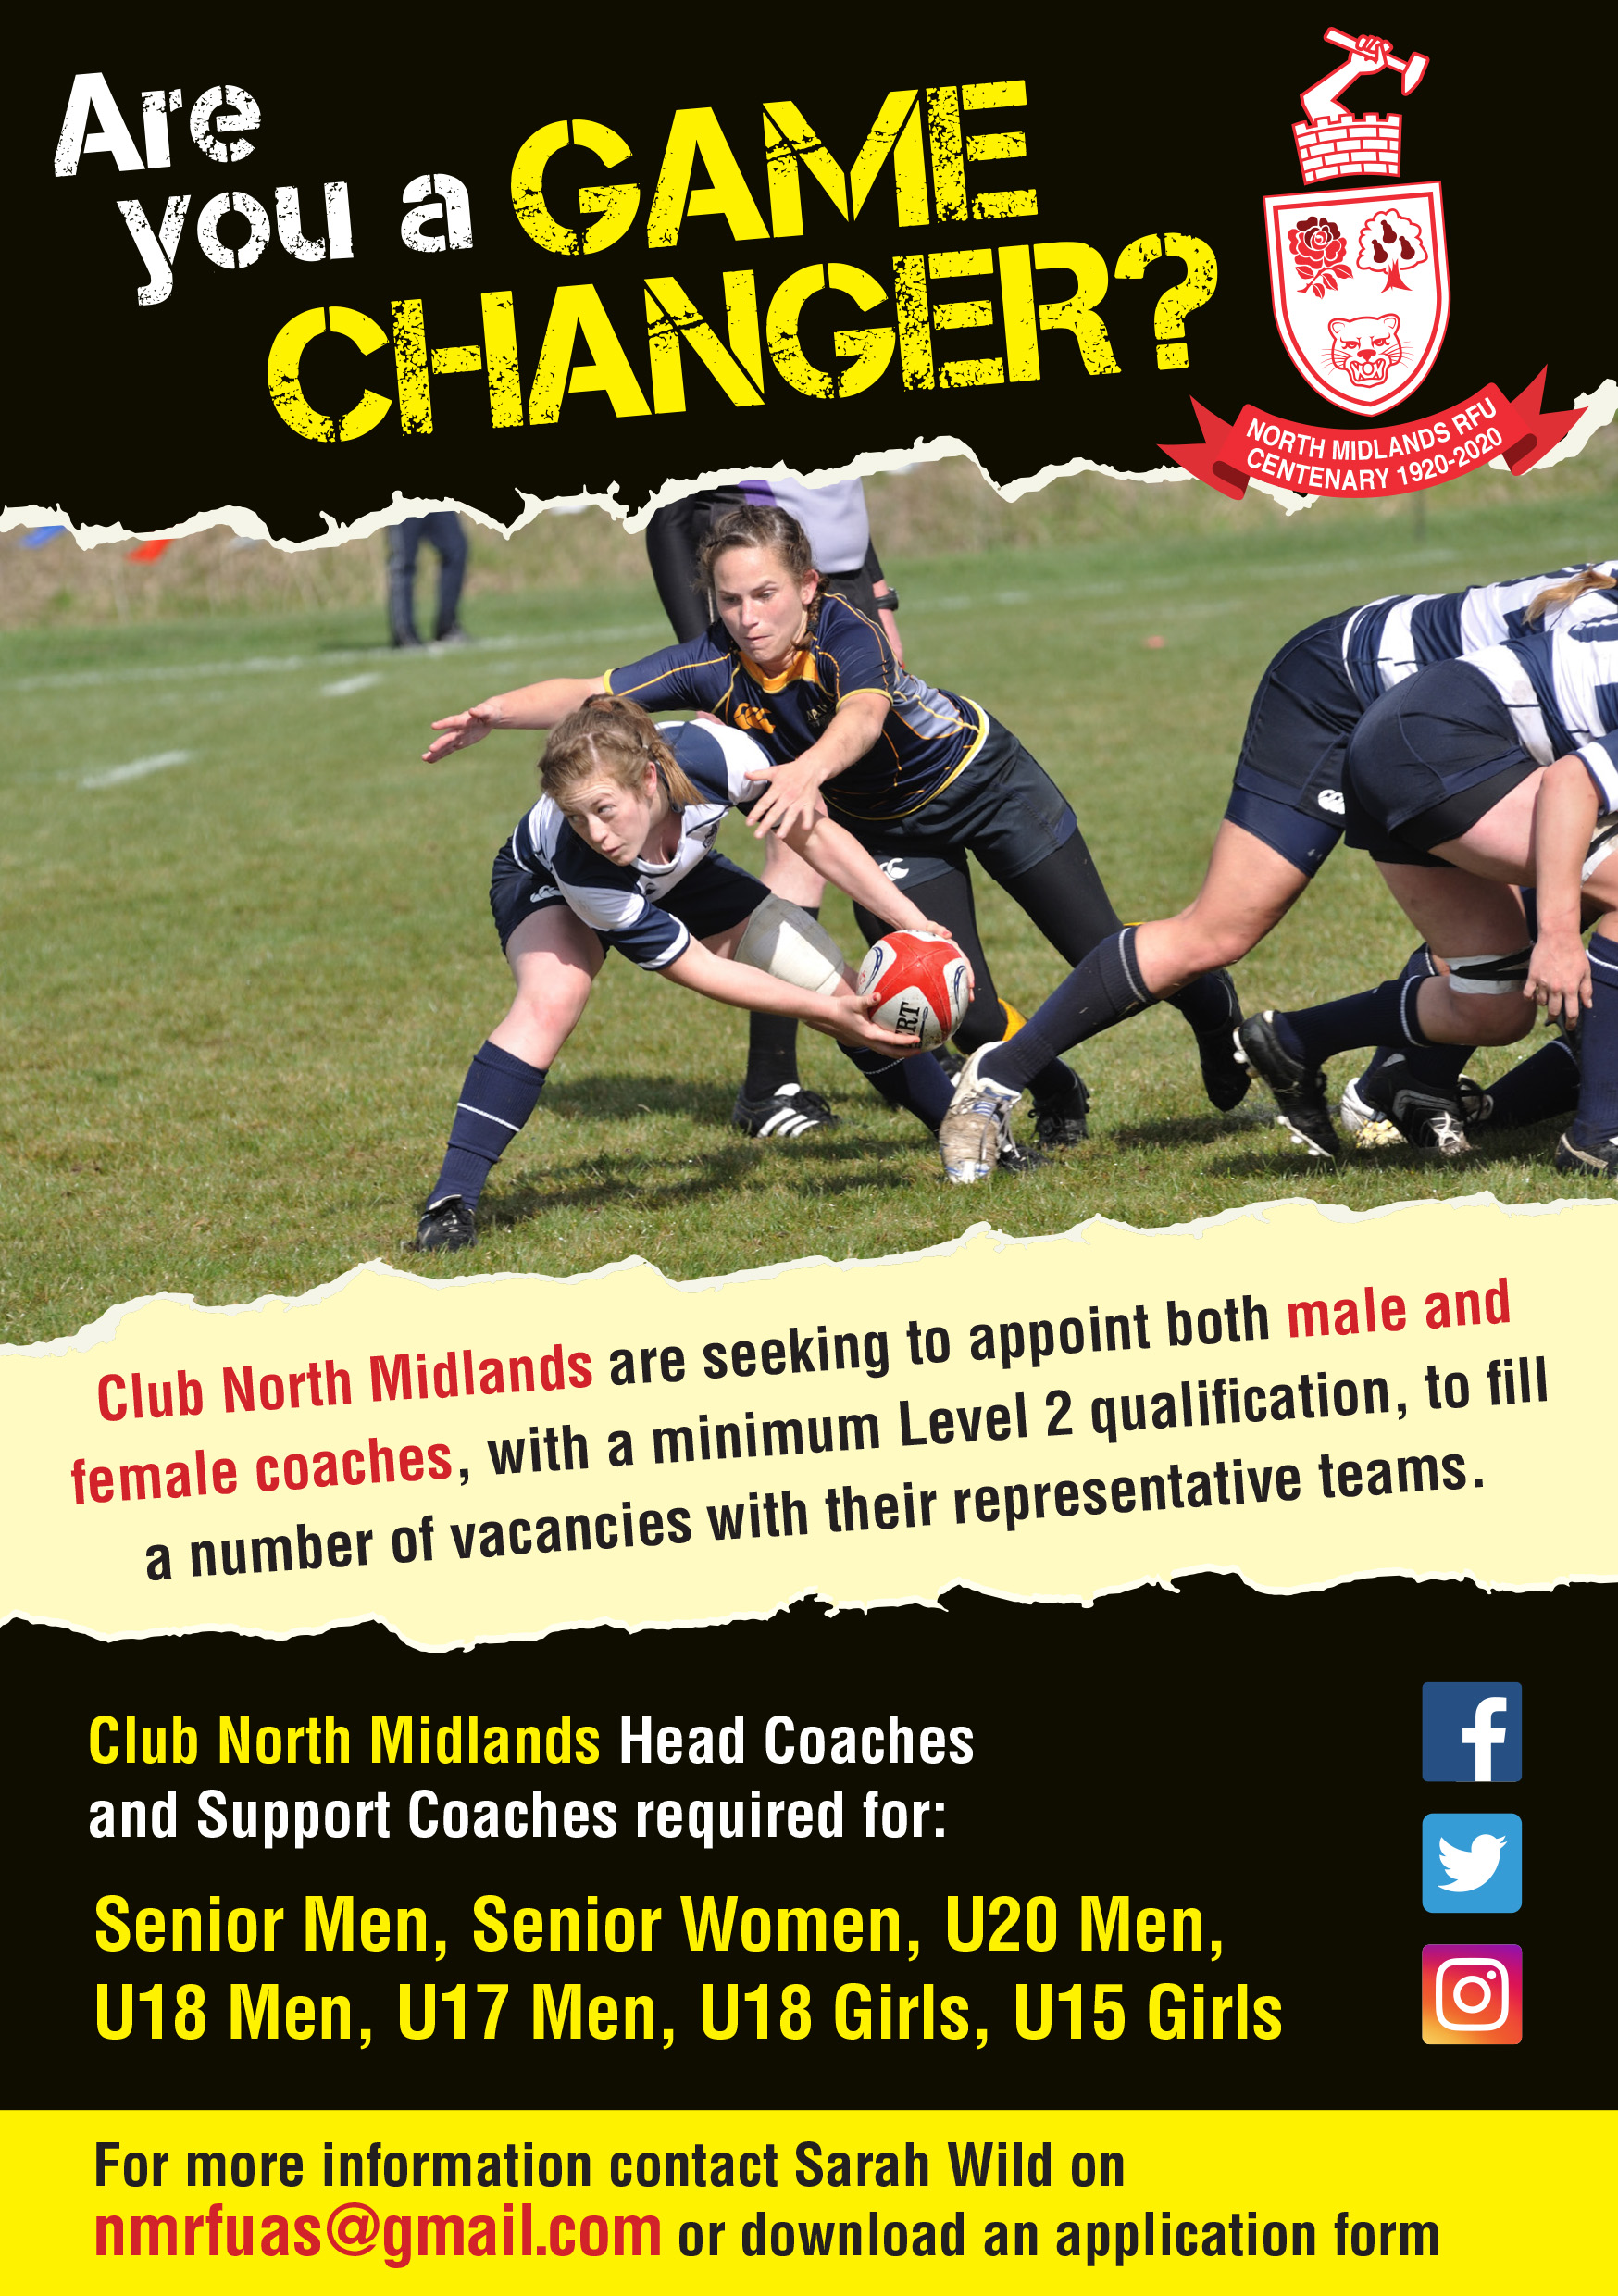 North Midlands RFU seek to appoint male and female coaches for their representative teams.